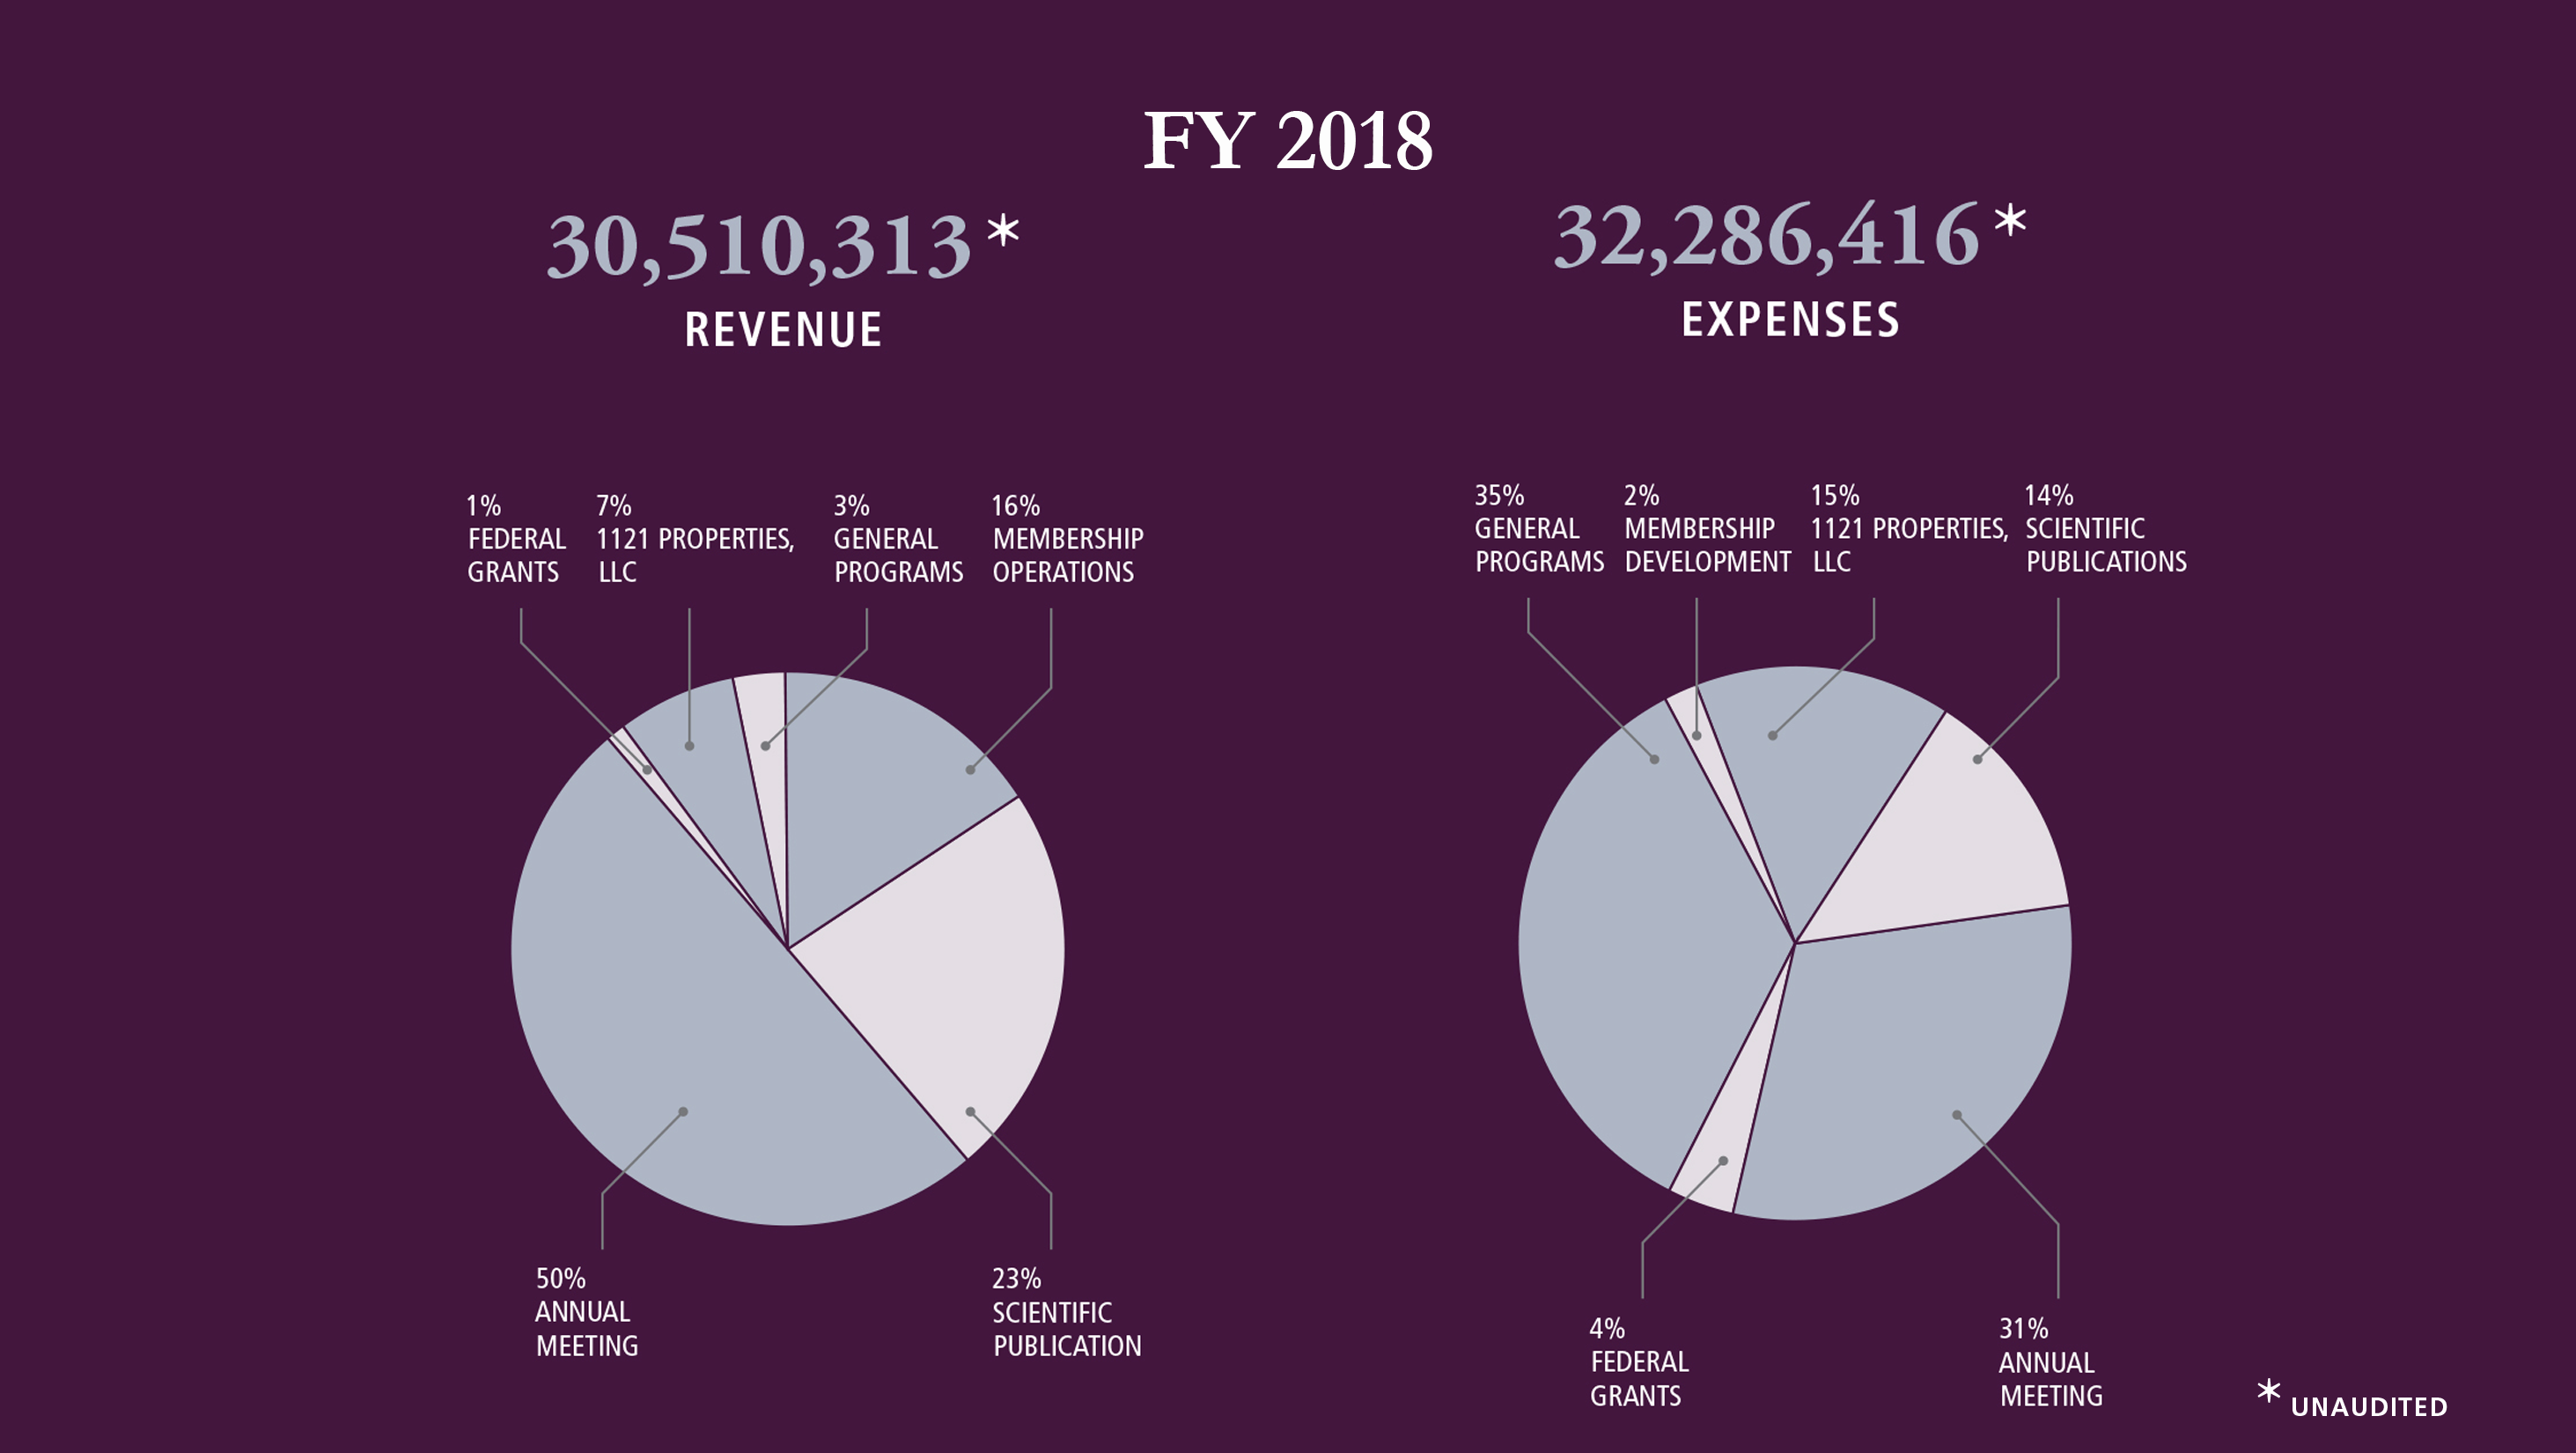 Financial Overview FY 2018